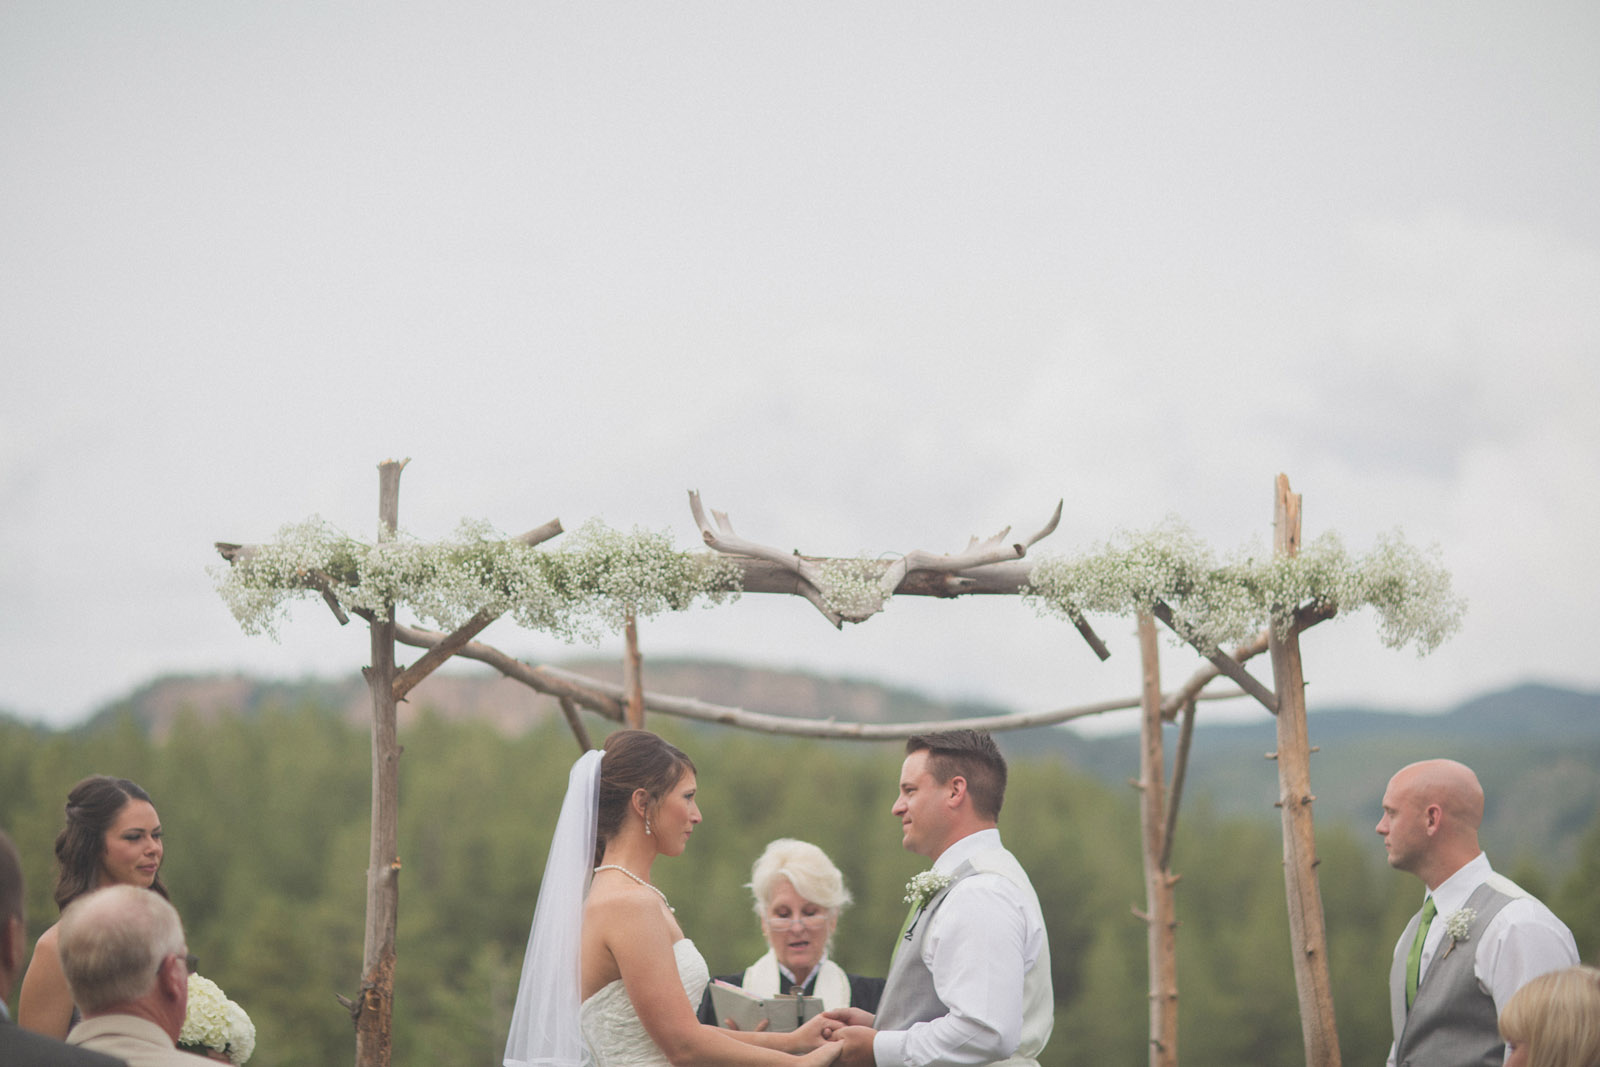 136-wedding-ideas-ideas-wedding-forest-mason-jars-backdrop-colorado-mancos-ceremony